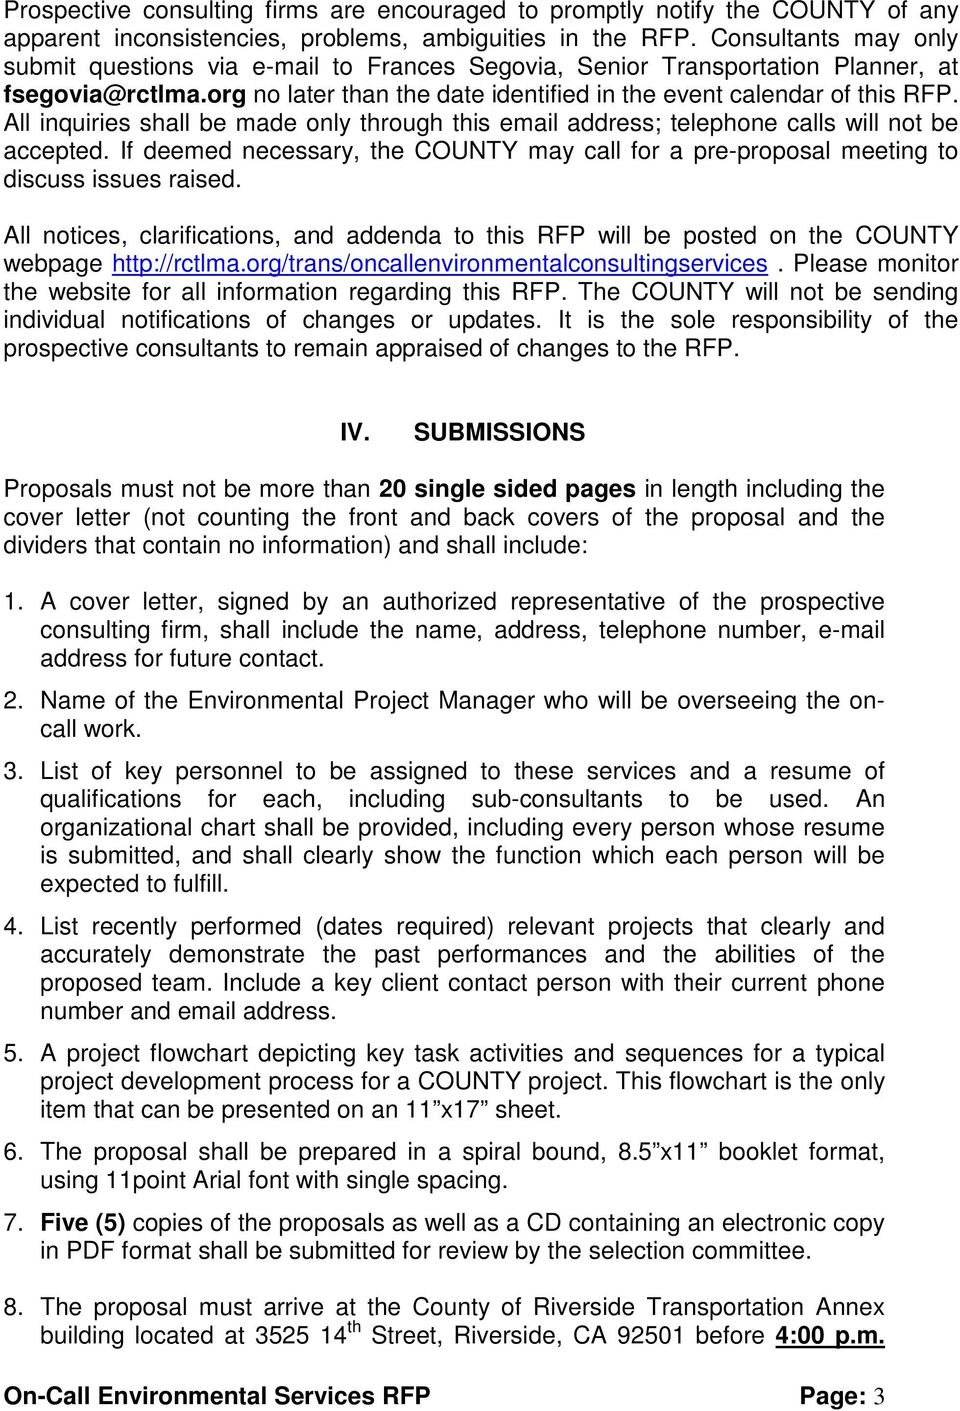 REQUEST FOR PROPOSAL to provide ON-CALL ENVIRONMENTAL CONSULTING ...